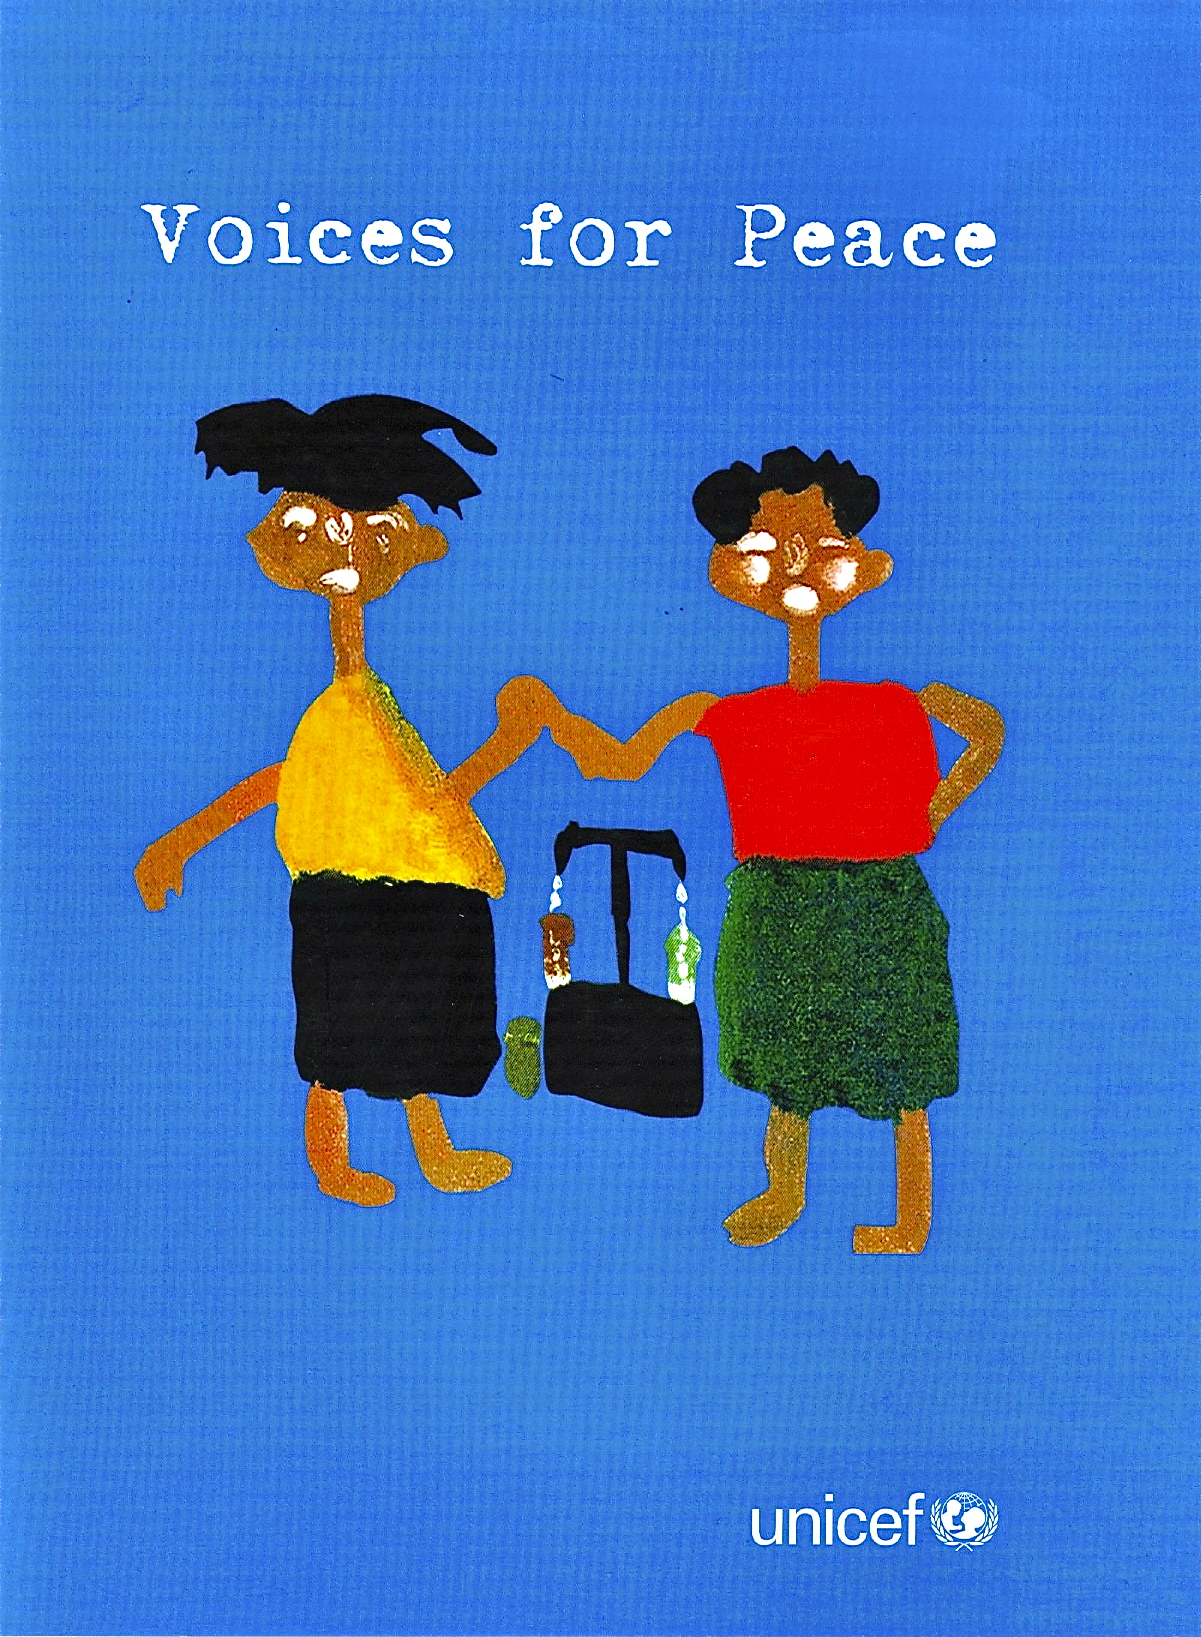 Voices of Peace: Refugees from the Great Lakes Conflicts.  Editor. (UNICEF, 2006).